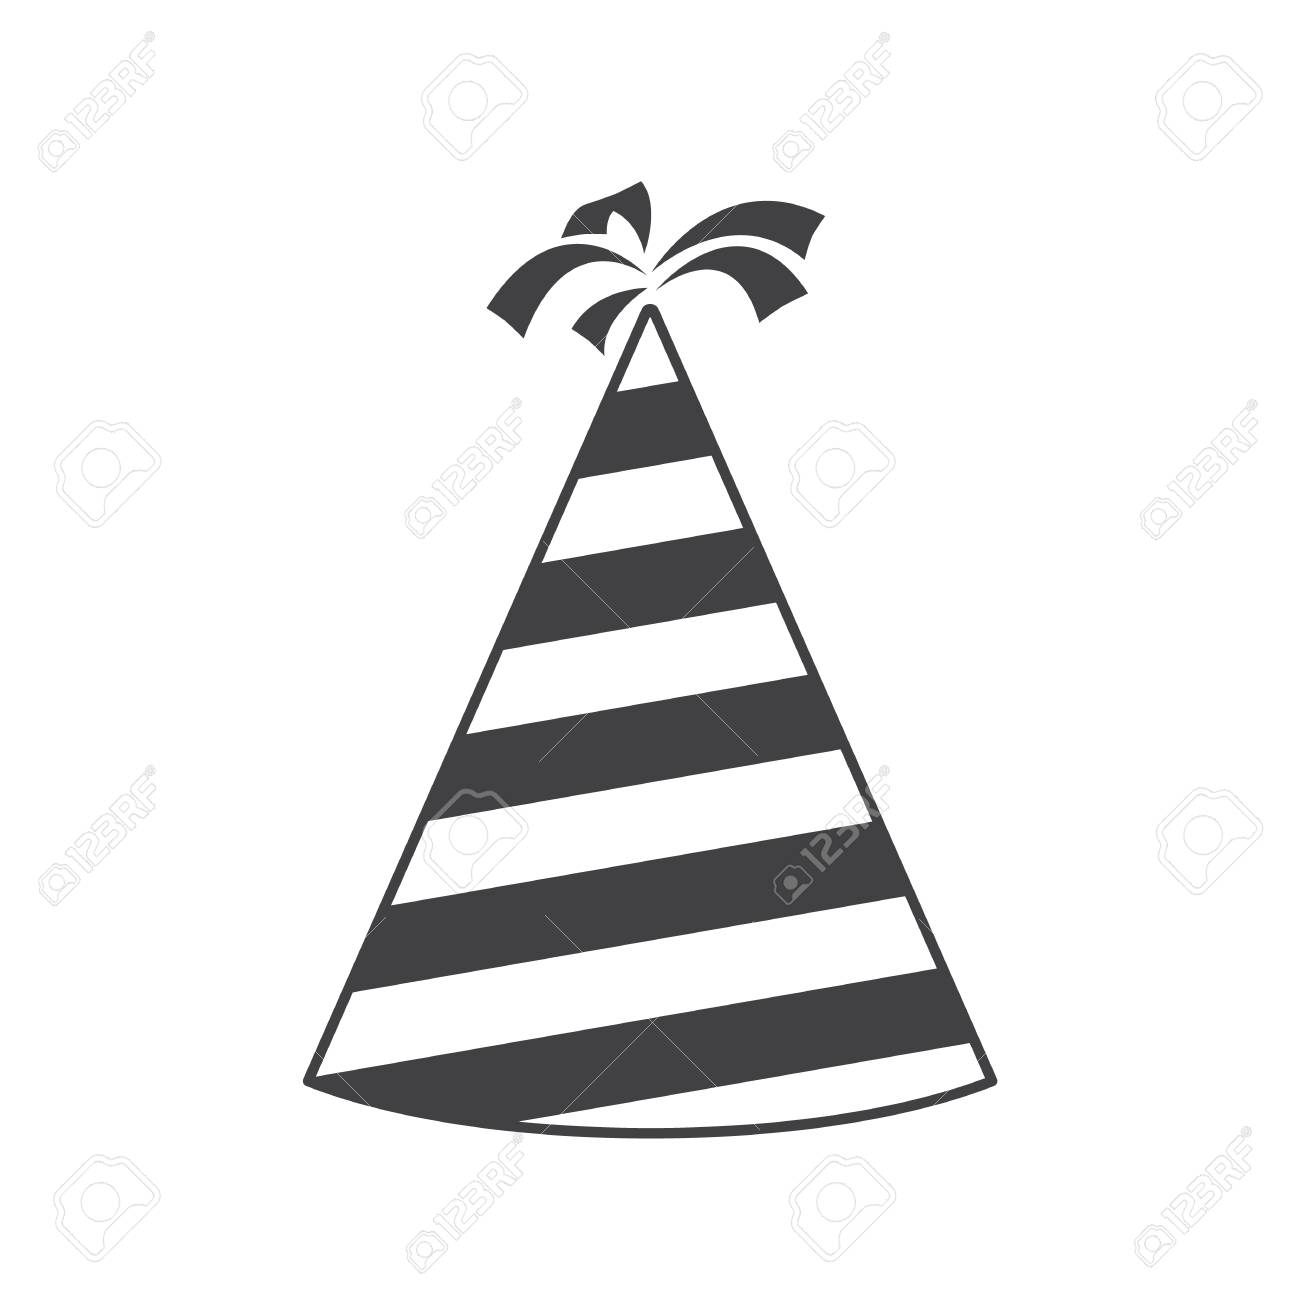 Party Hat Cone Silhouette Icon Accessory Symbol Of The Holiday